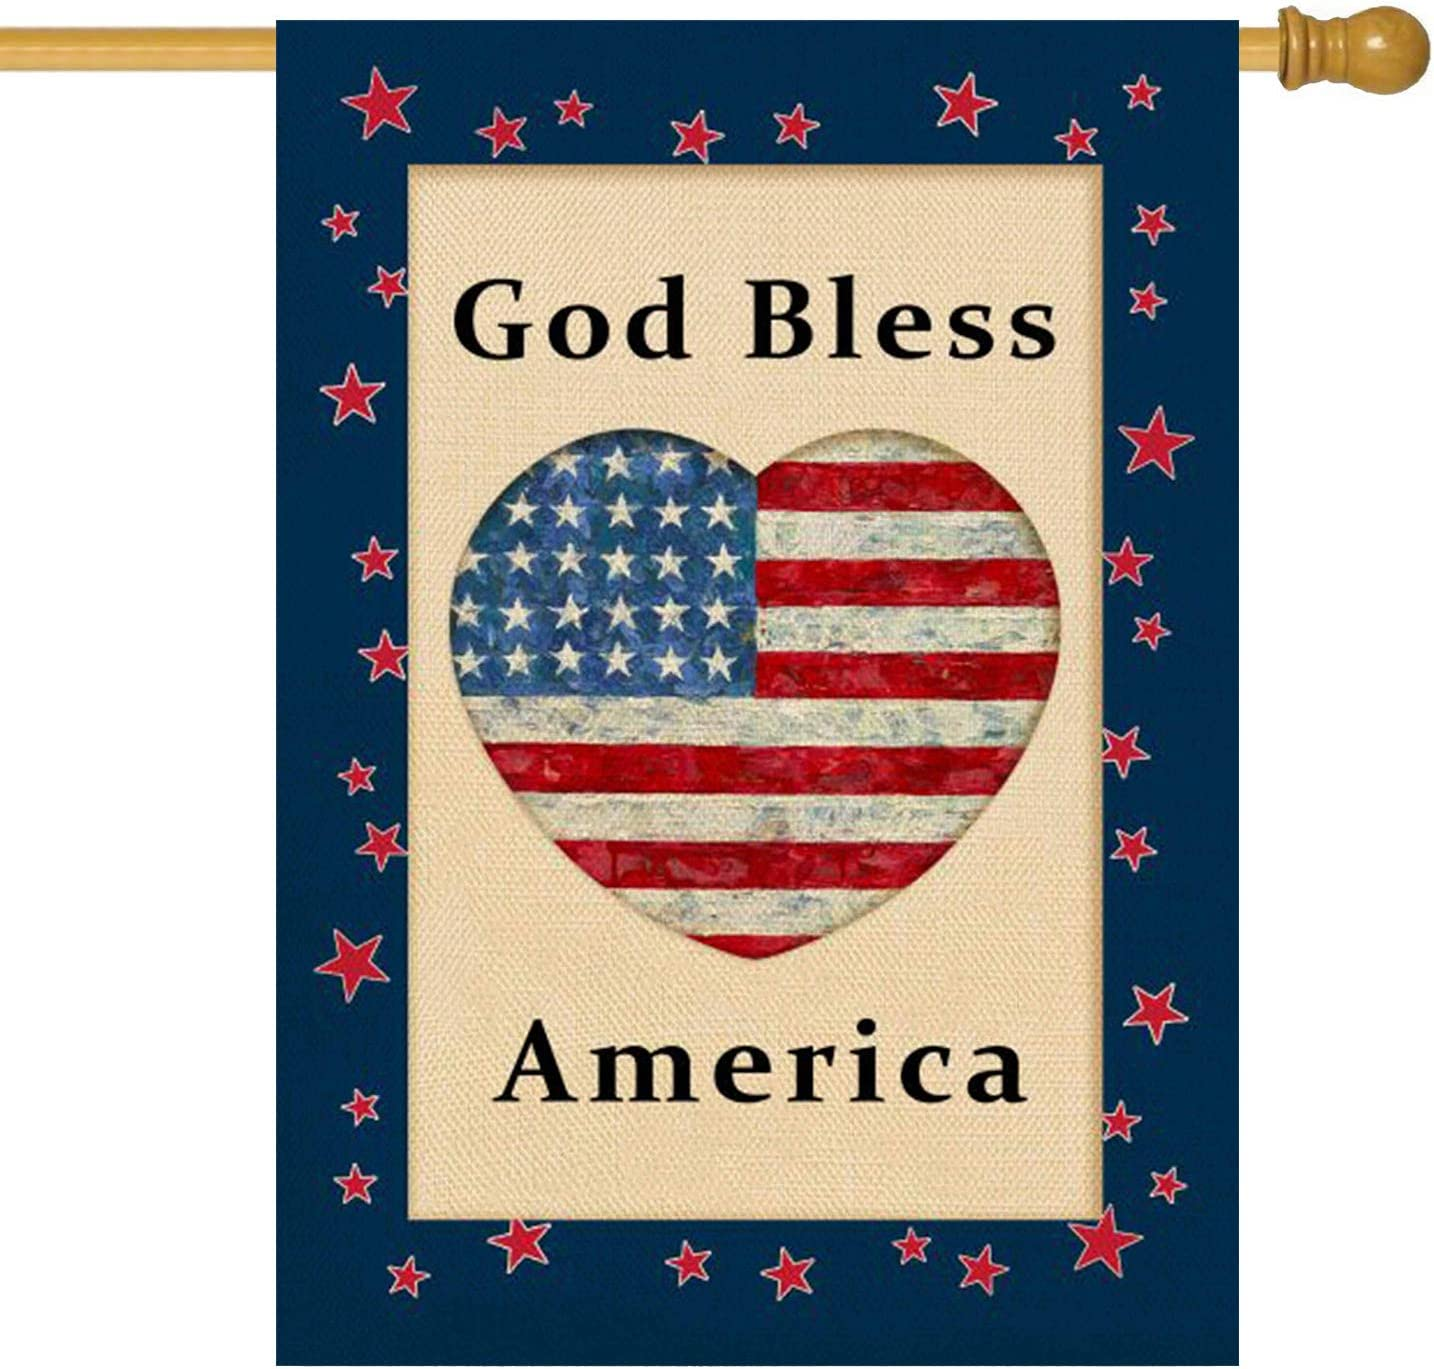 Molili God Bless America Garden Flag Burlap Vertical Double Sided,Farmhouse Summer 4th of July Patriotic American Flag Memorial Independence Day Garden Yard Decor ,Seasonal Outdoor Flag 28 x 40inch